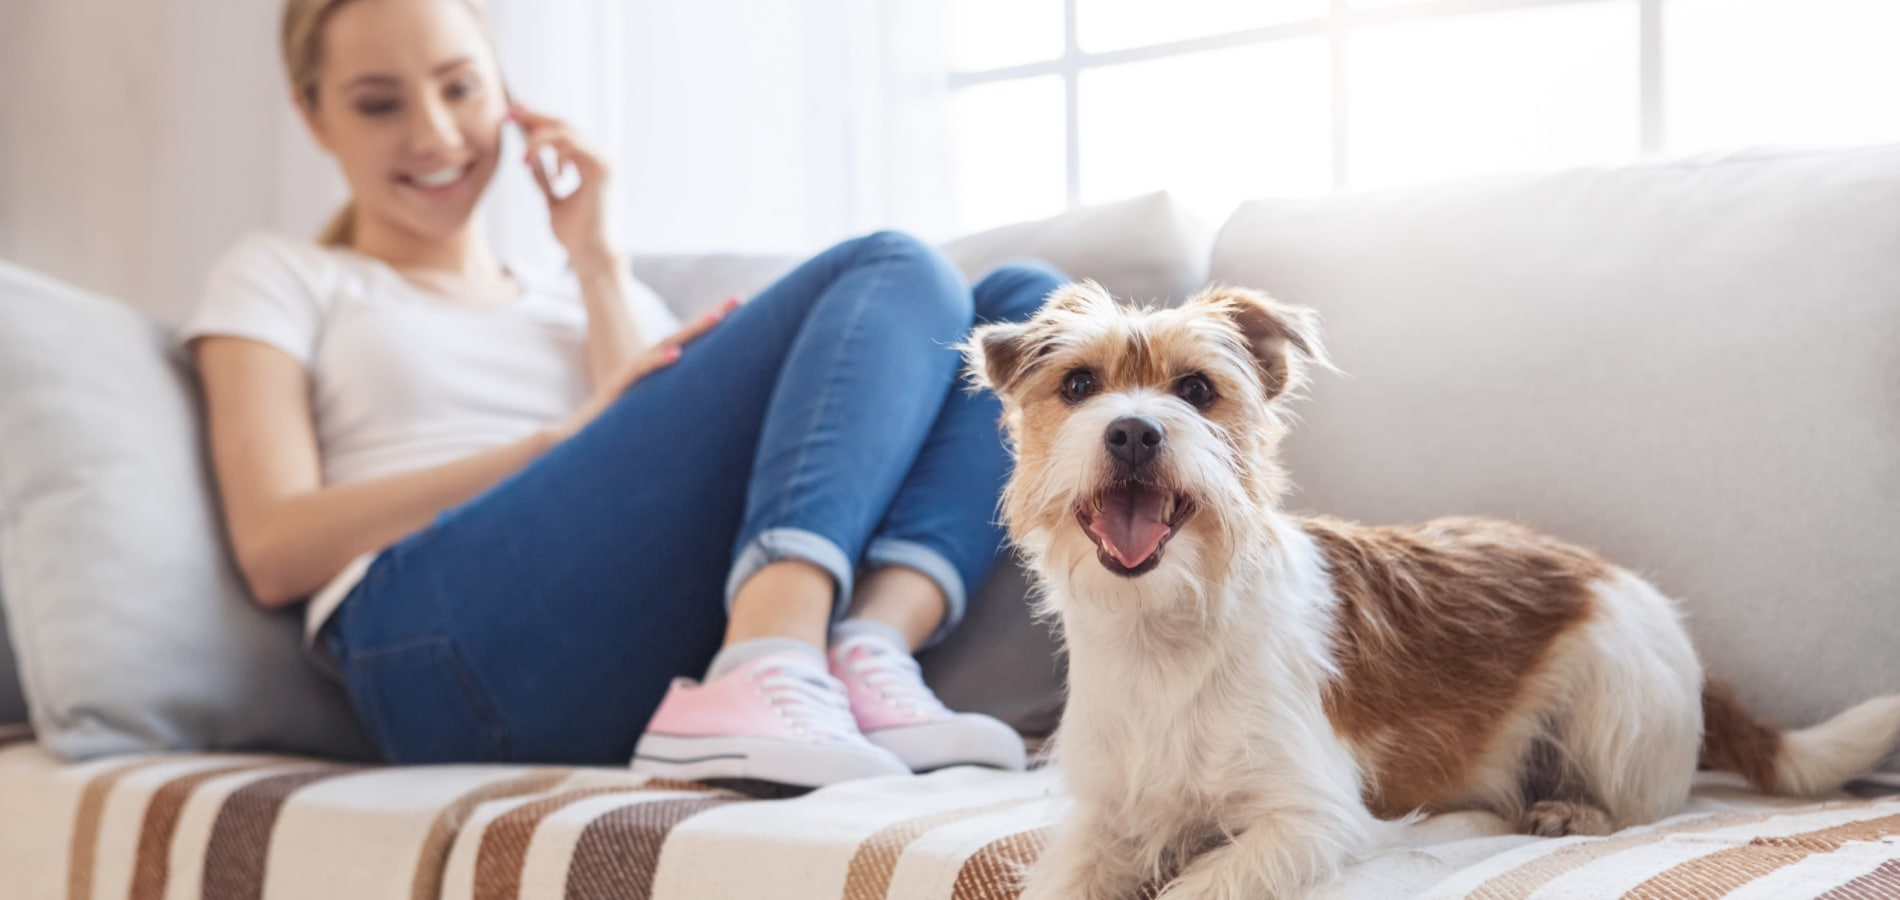 Woman and dog on couch at Callio Properties